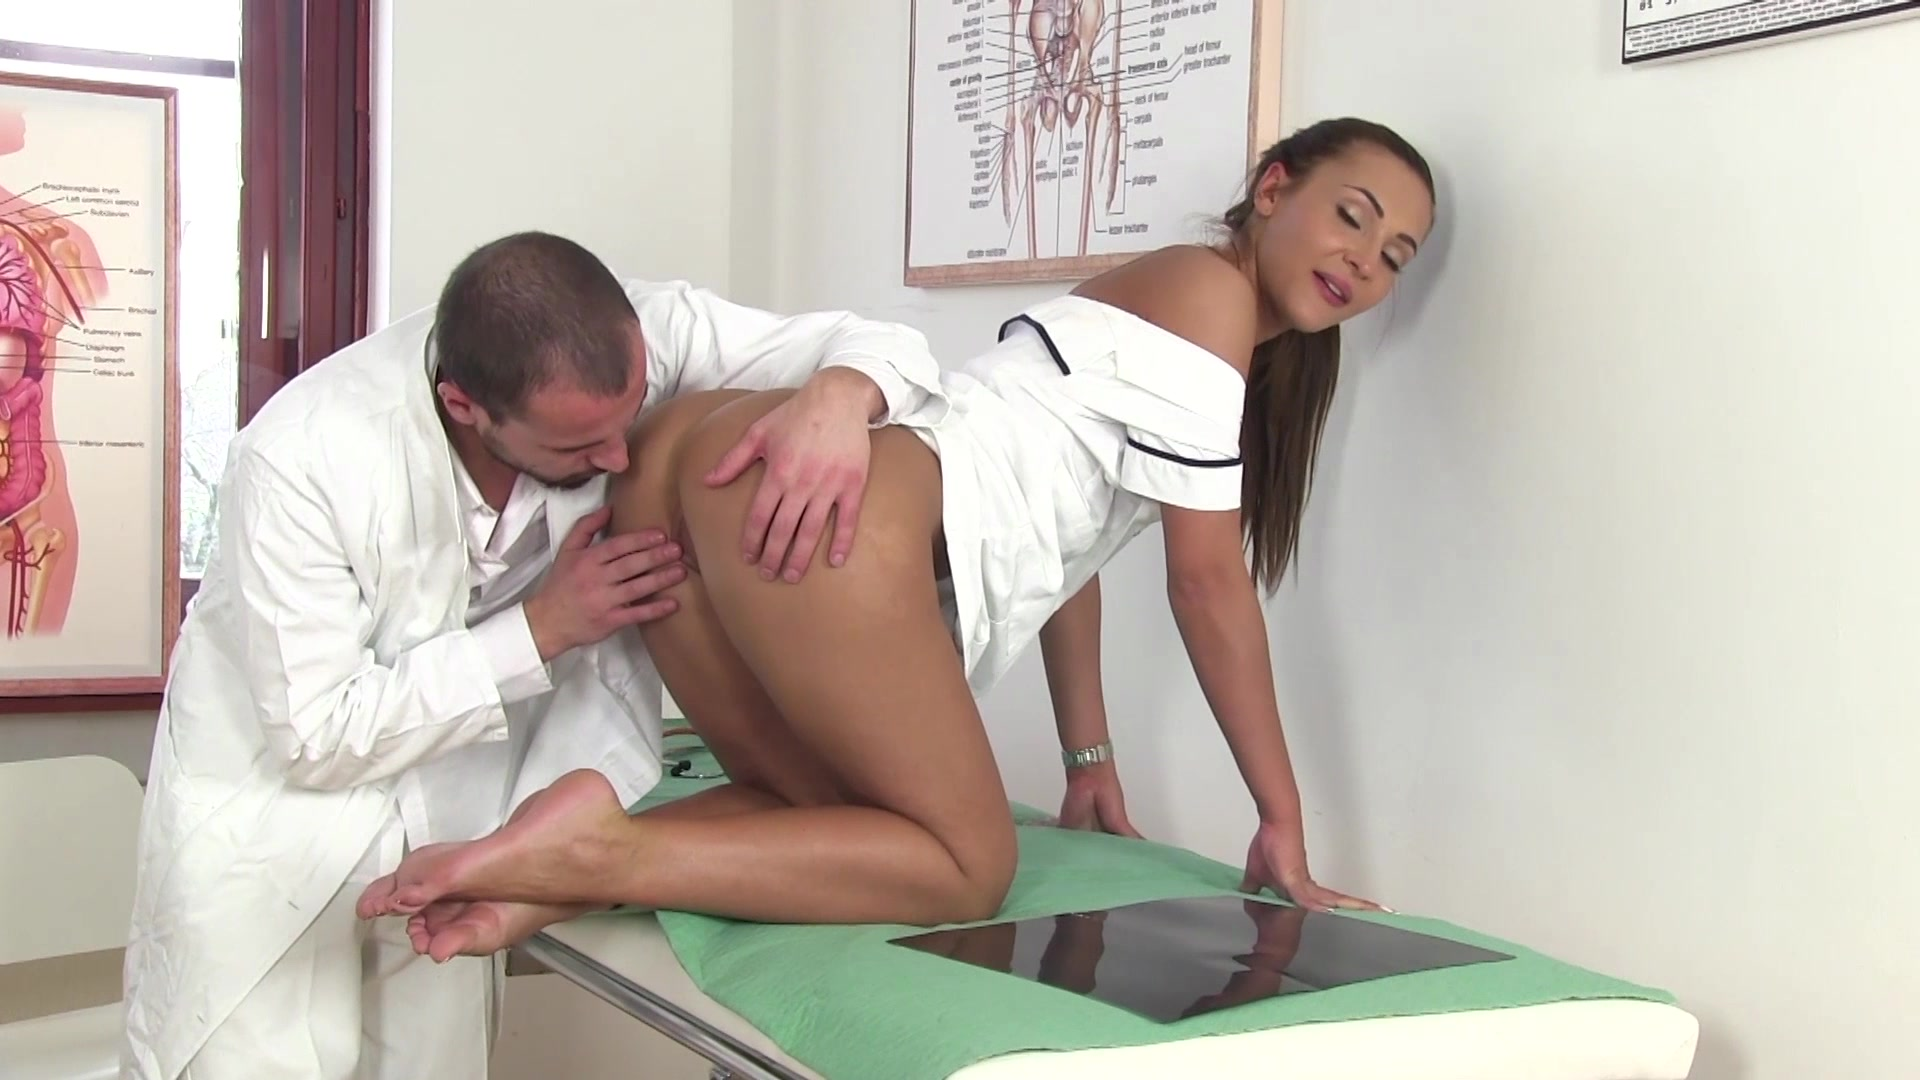 Nurse And Doctor Video Sex